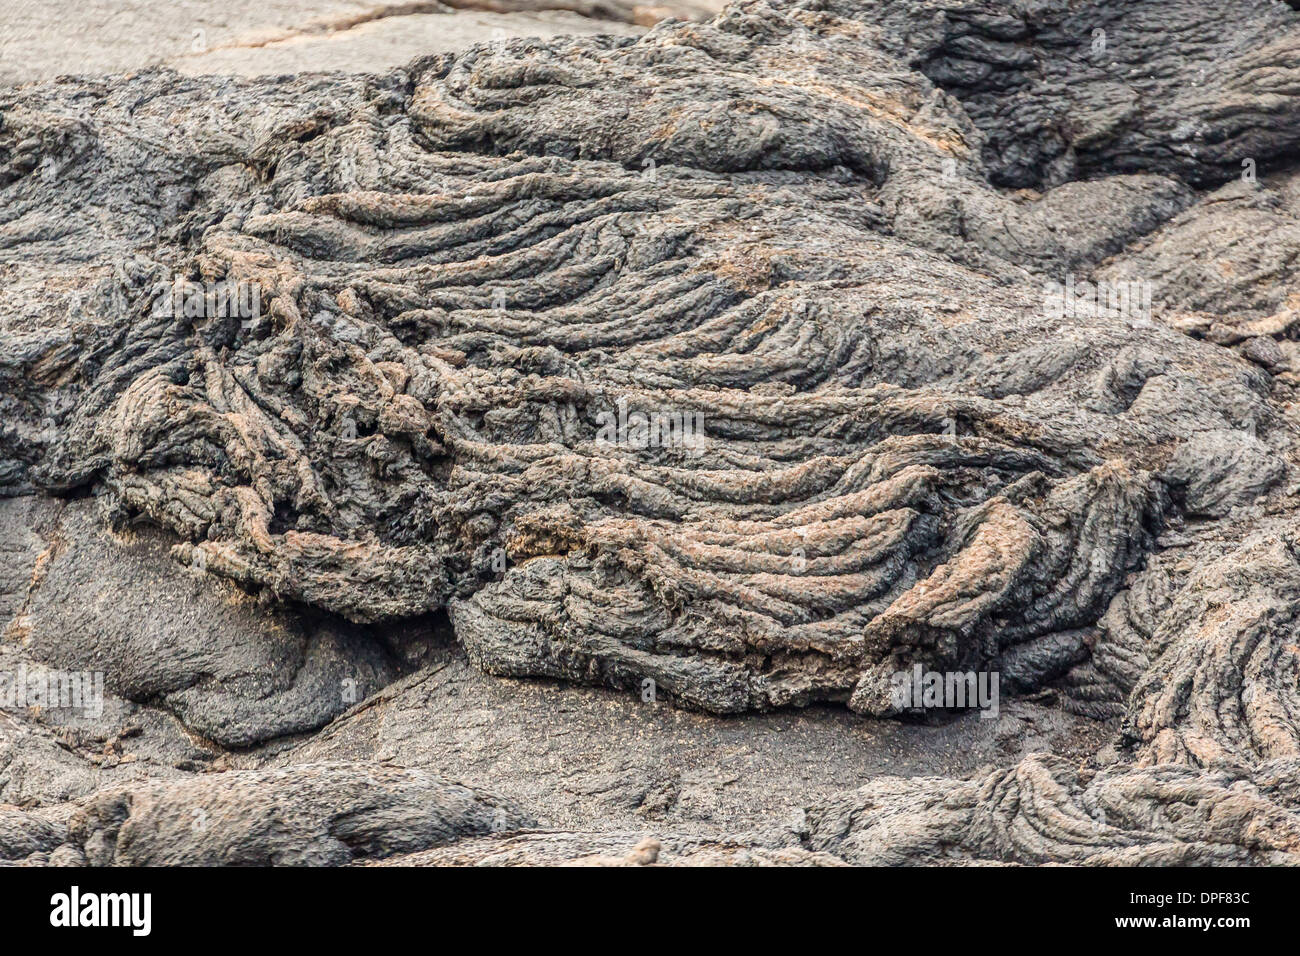 Example of pahoehoe lava on Fernandina Island, Galapagos Islands, Ecuador, South America - Stock Image